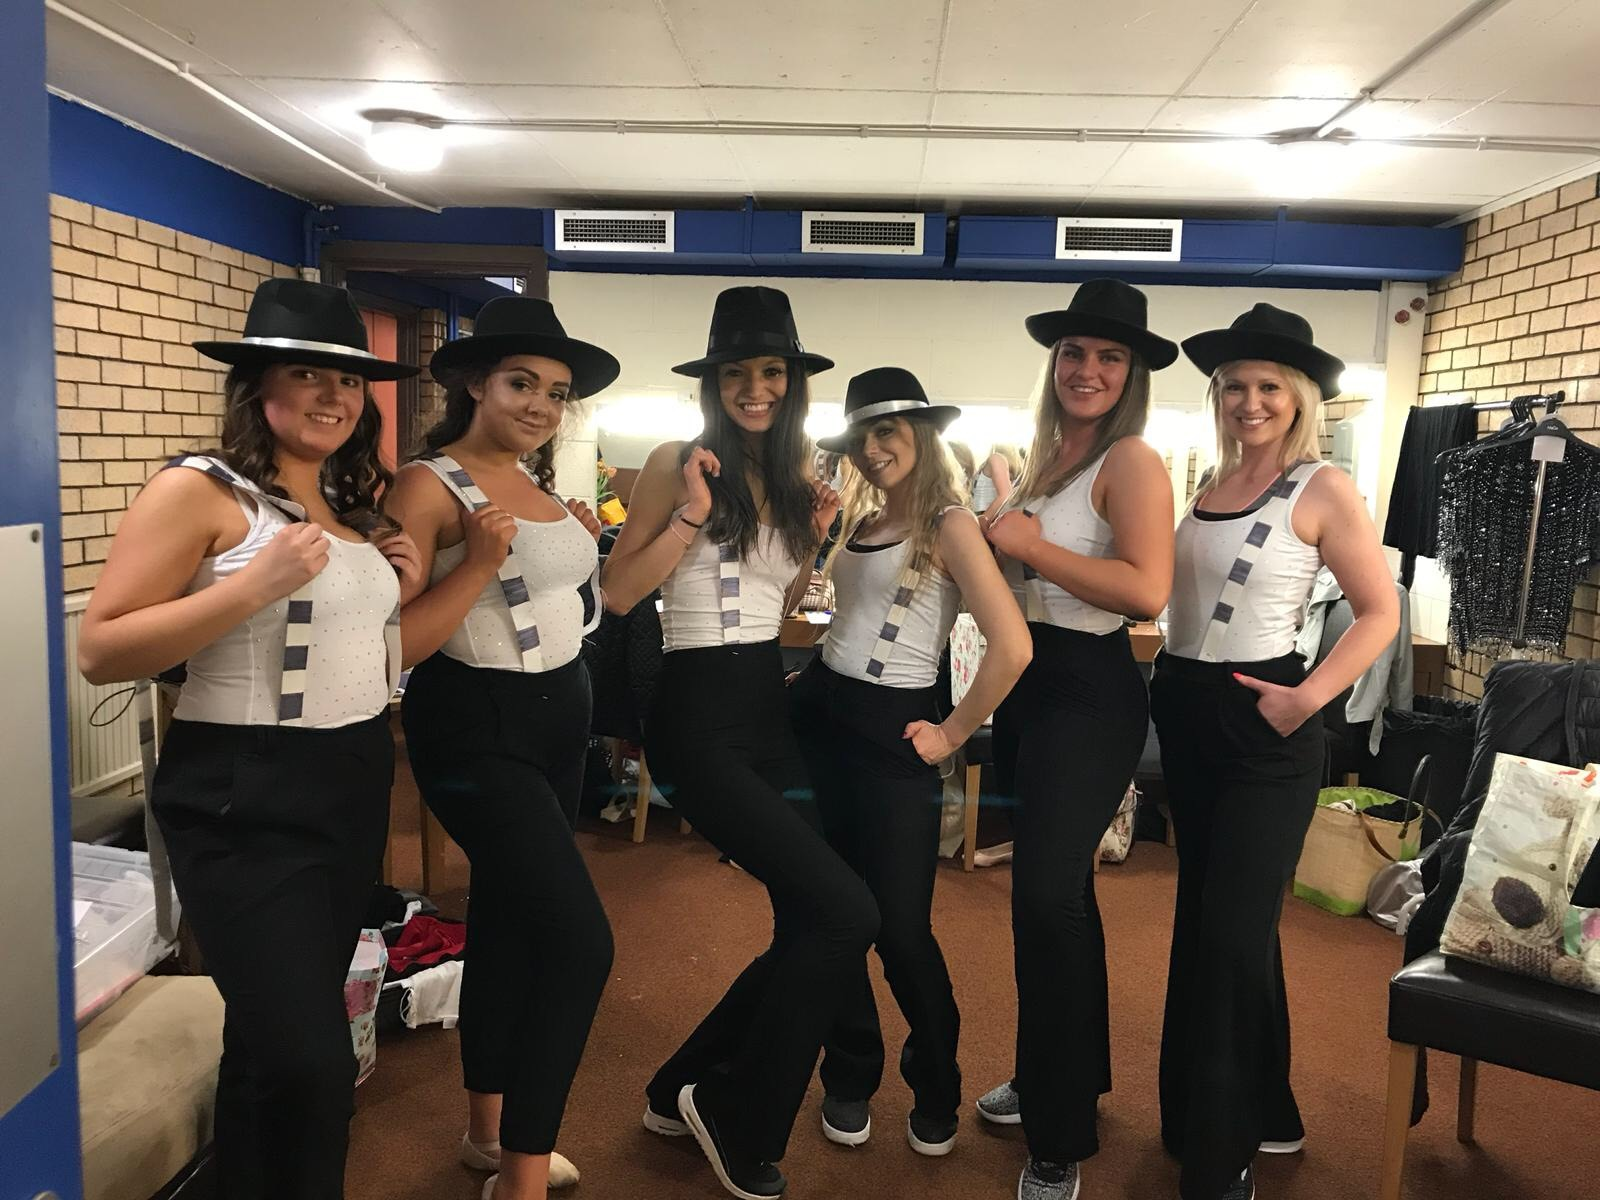 Dancers prepare for the 2018 Splitz Dance show in Hexham's Queen's Hall, with proceeds from the event going to local charity.